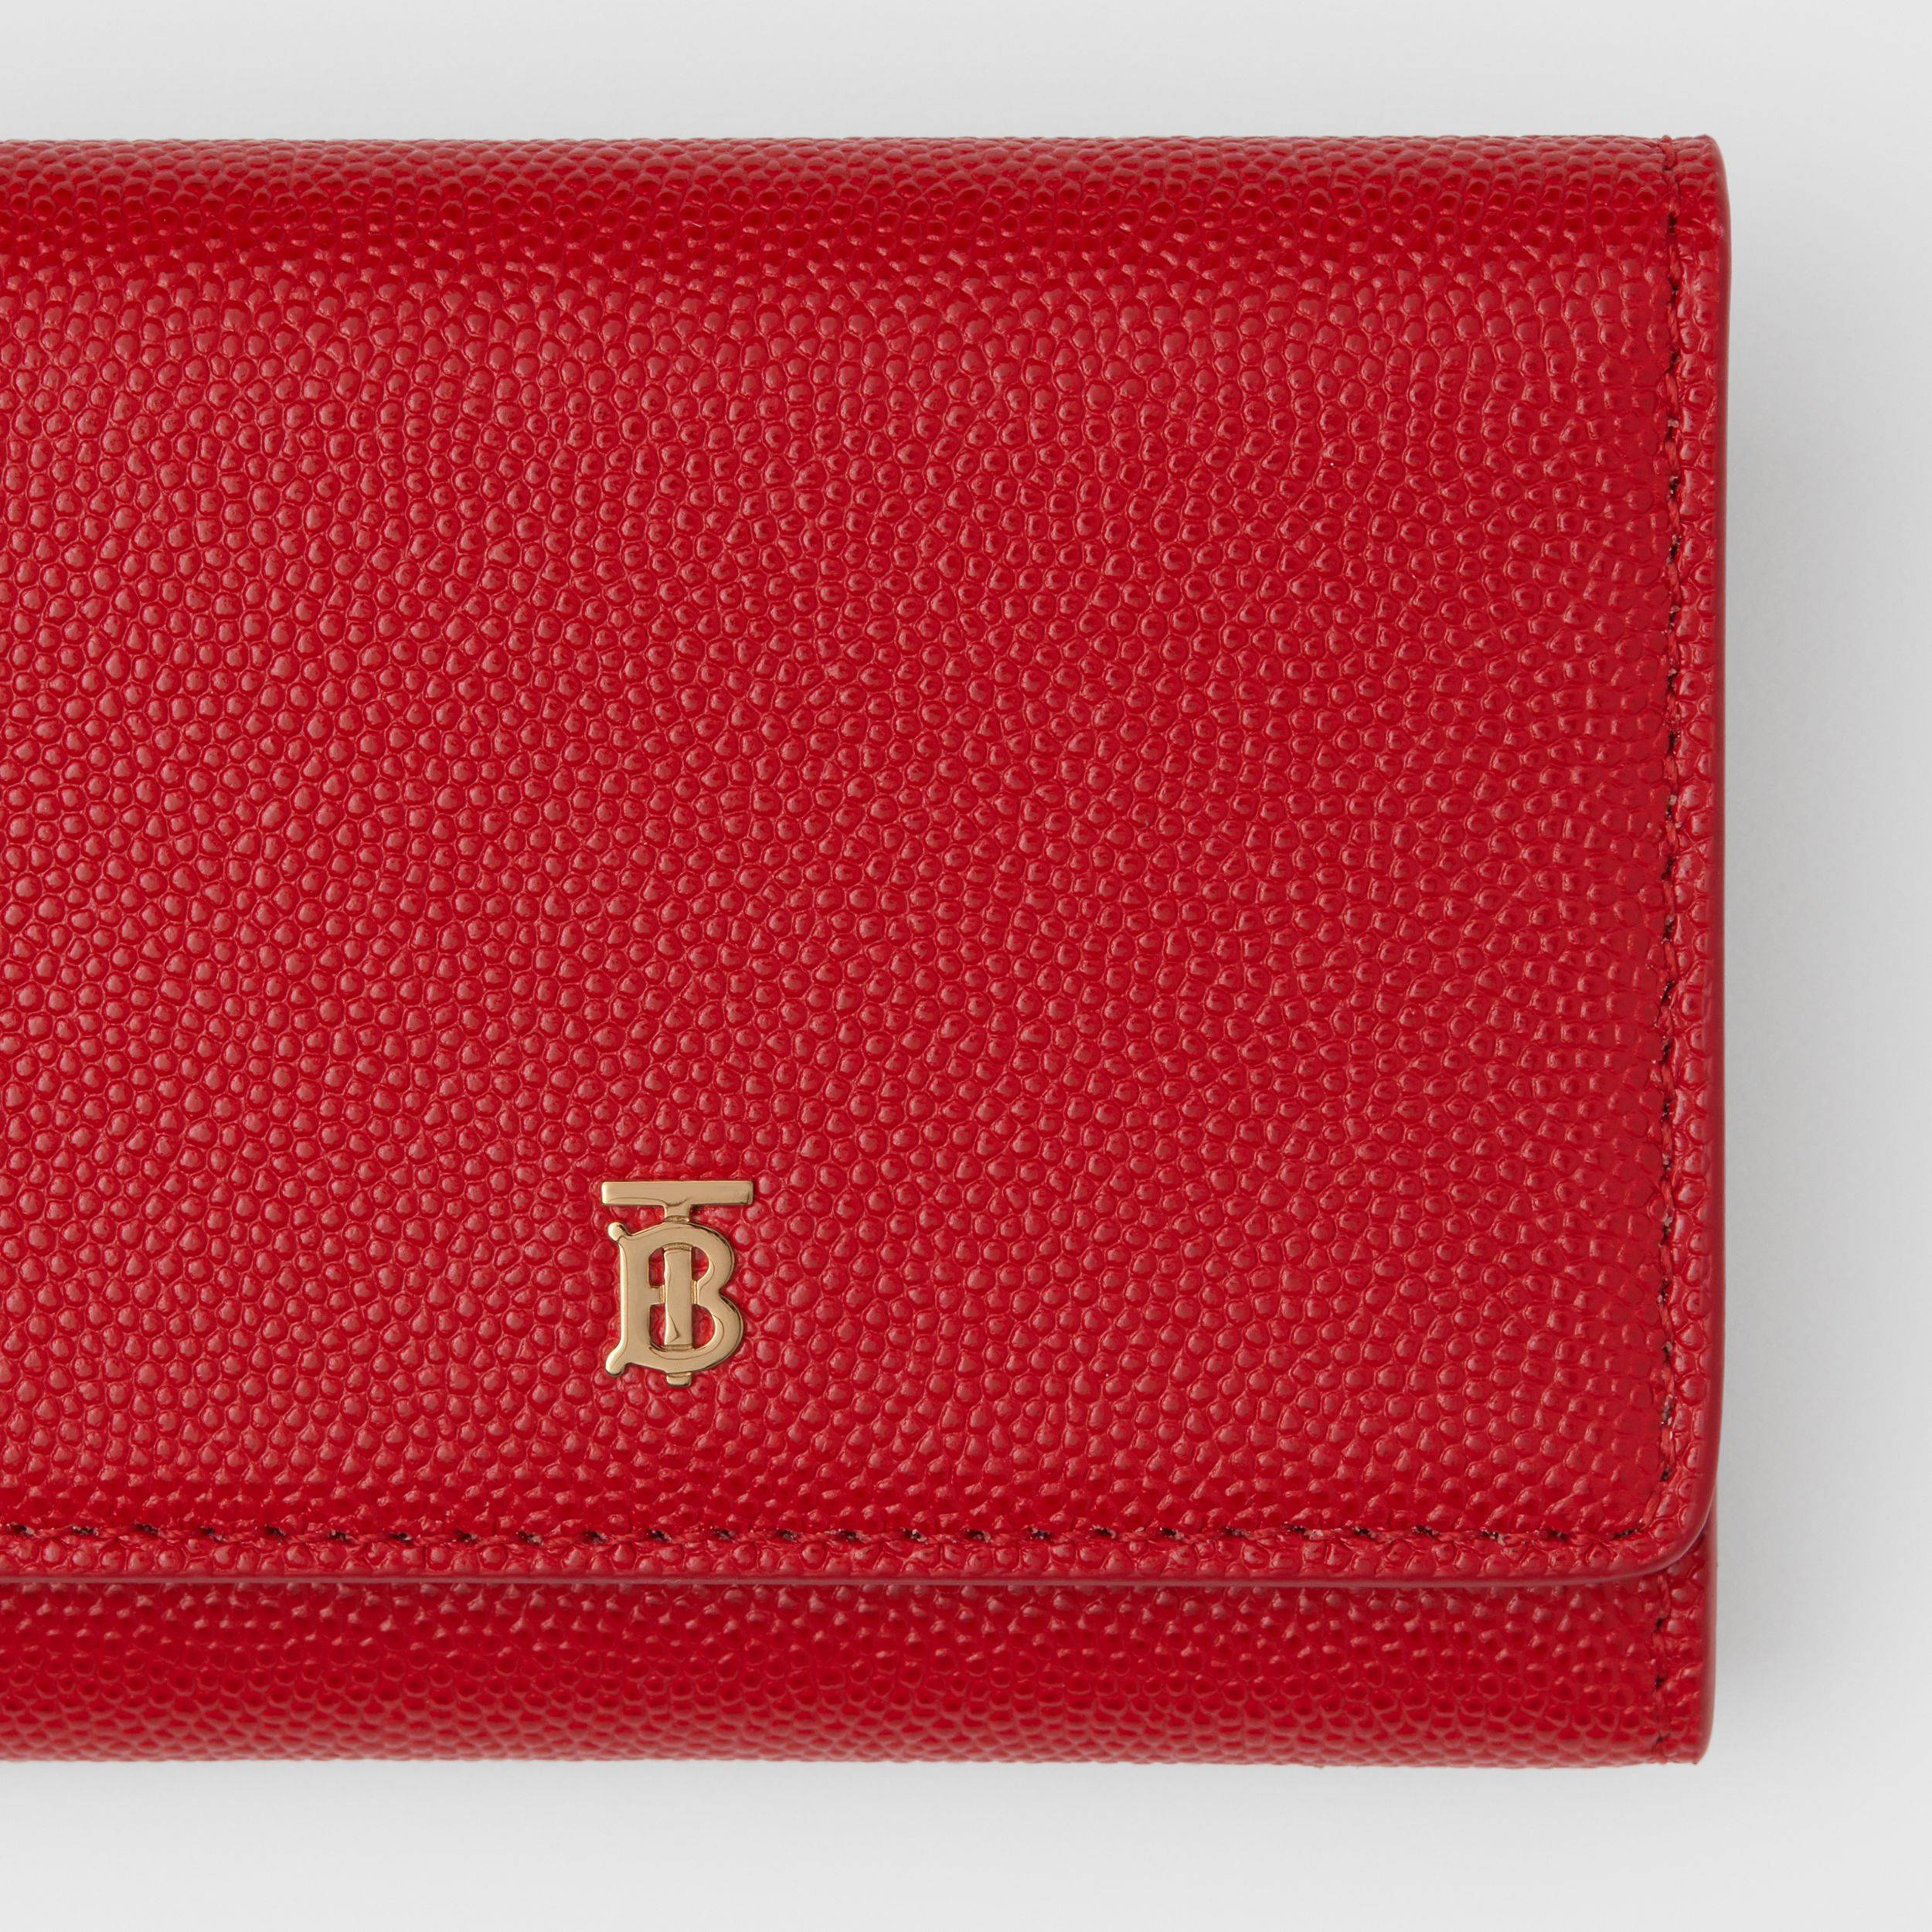 Grainy Leather ID Card Case in Bright Red - Women | Burberry - 2